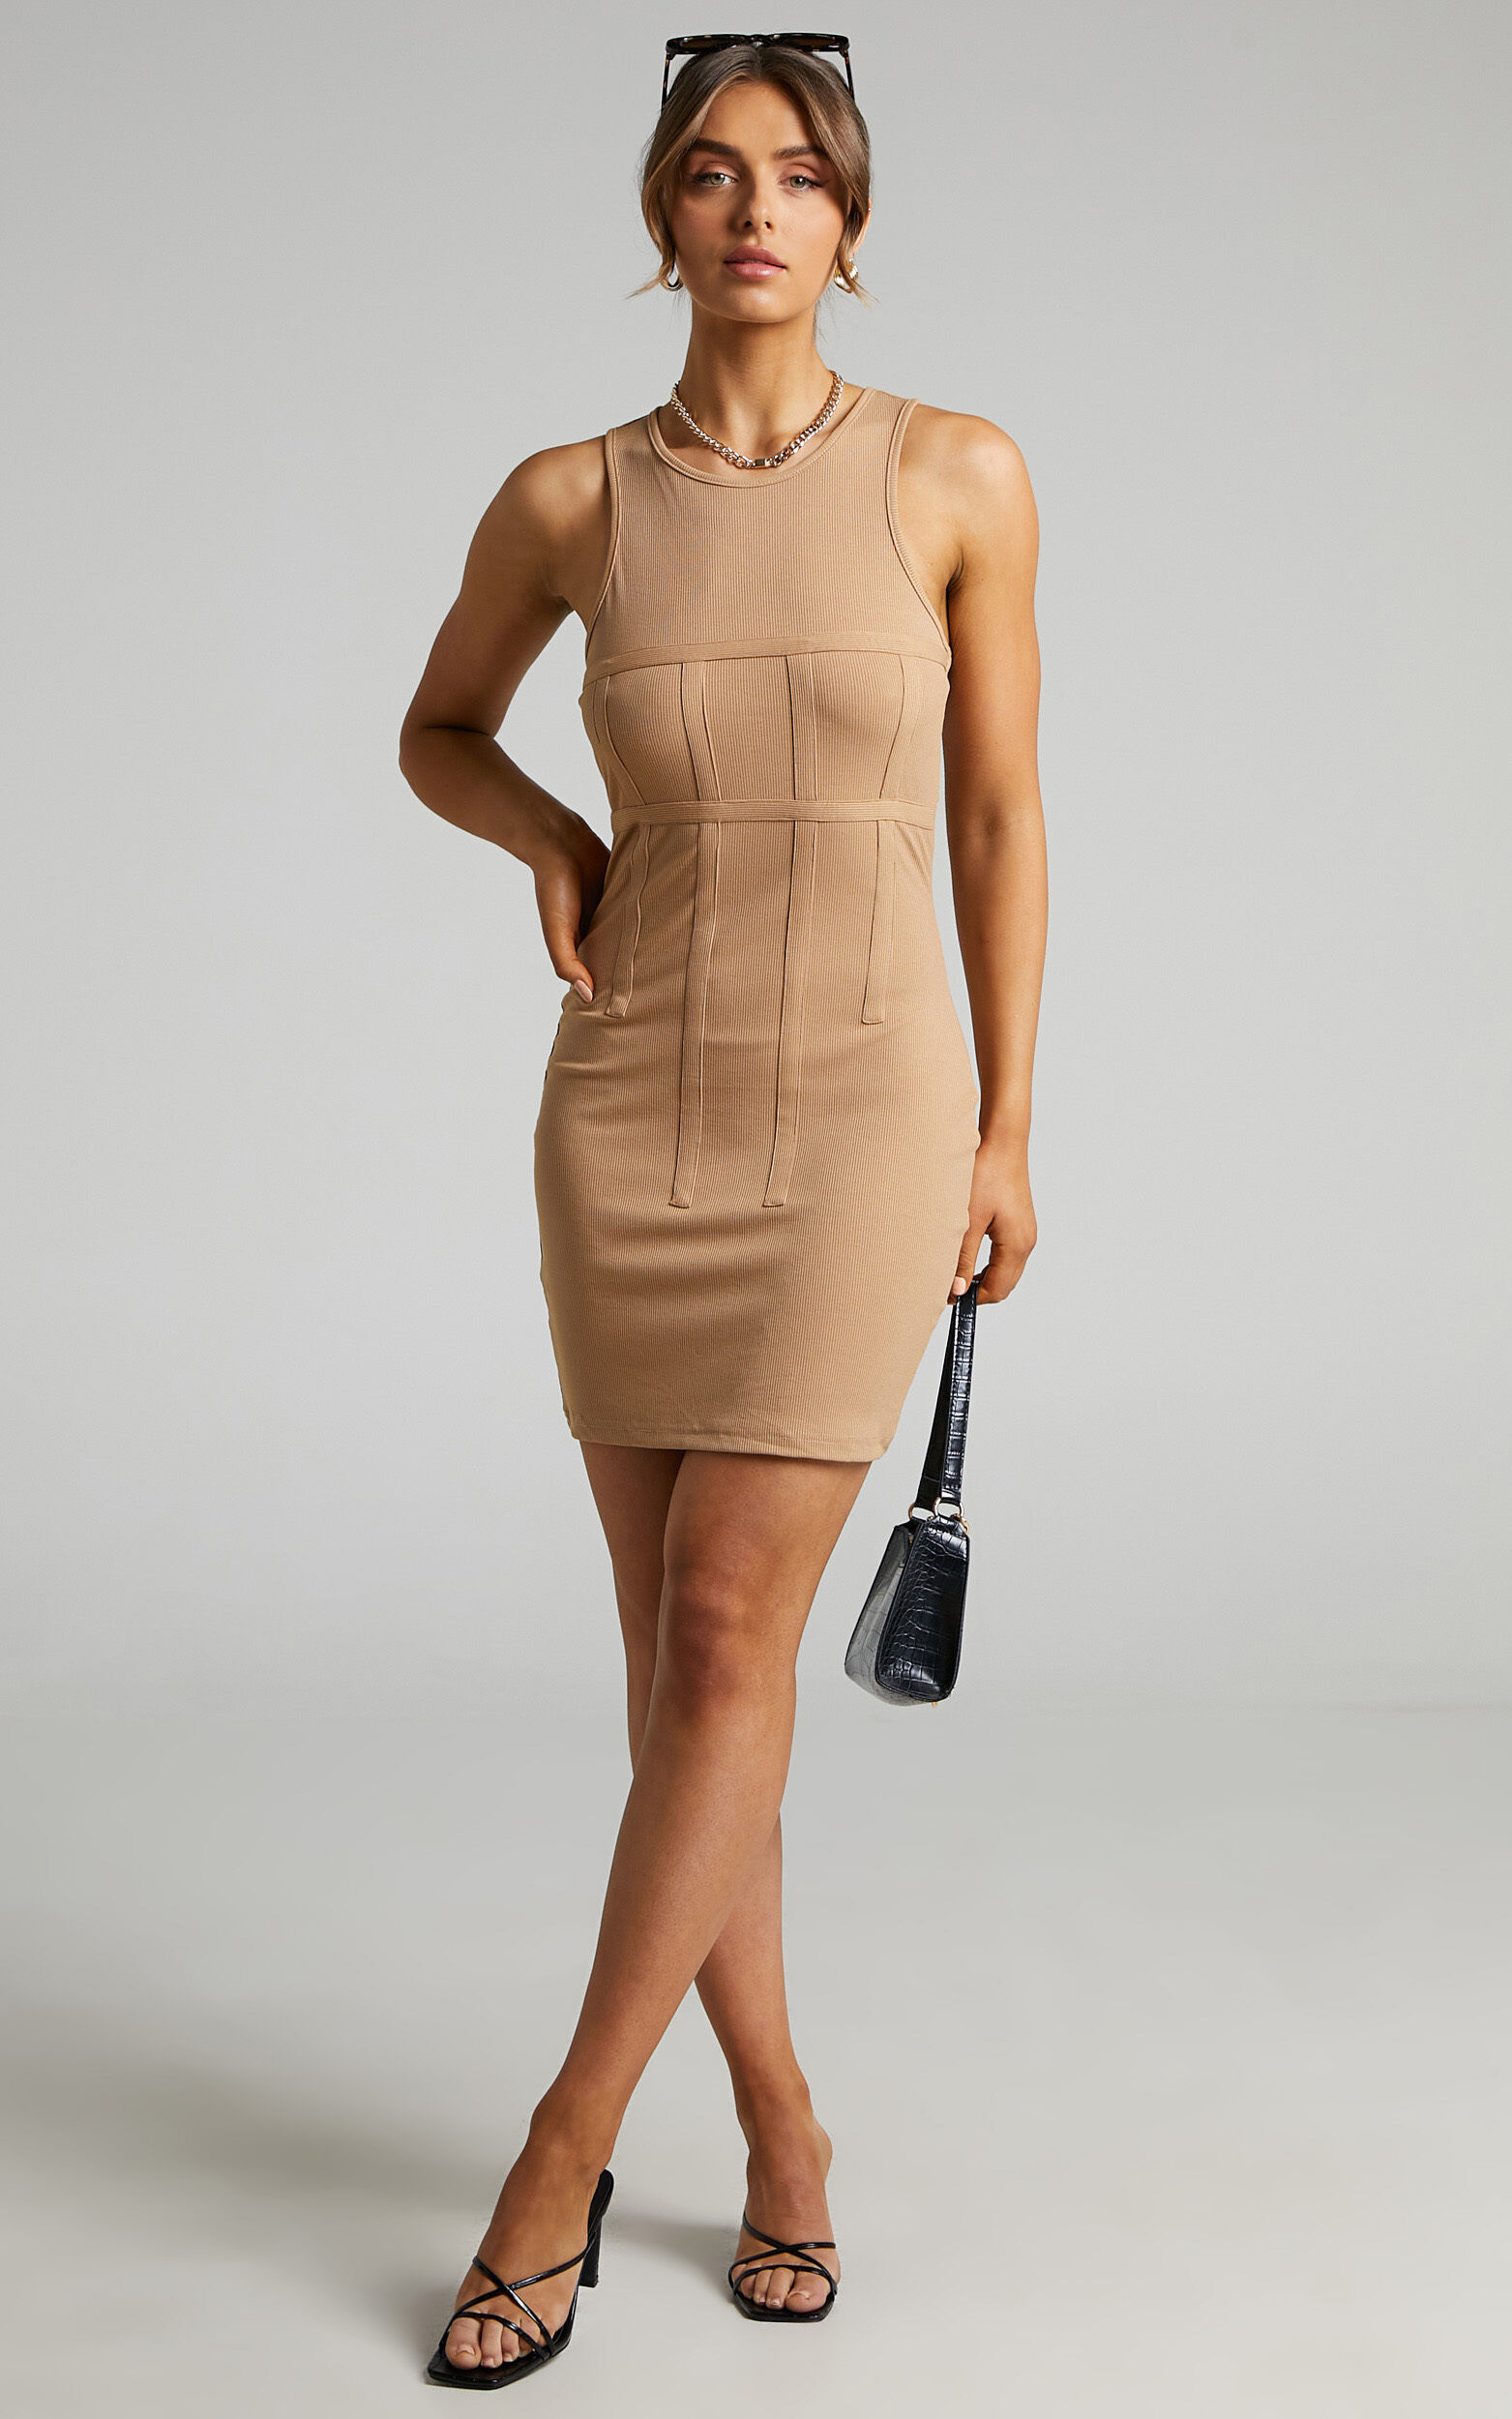 Ashley Bodycon Dress with Panel Detail in Beige - 06, BRN1, super-hi-res image number null